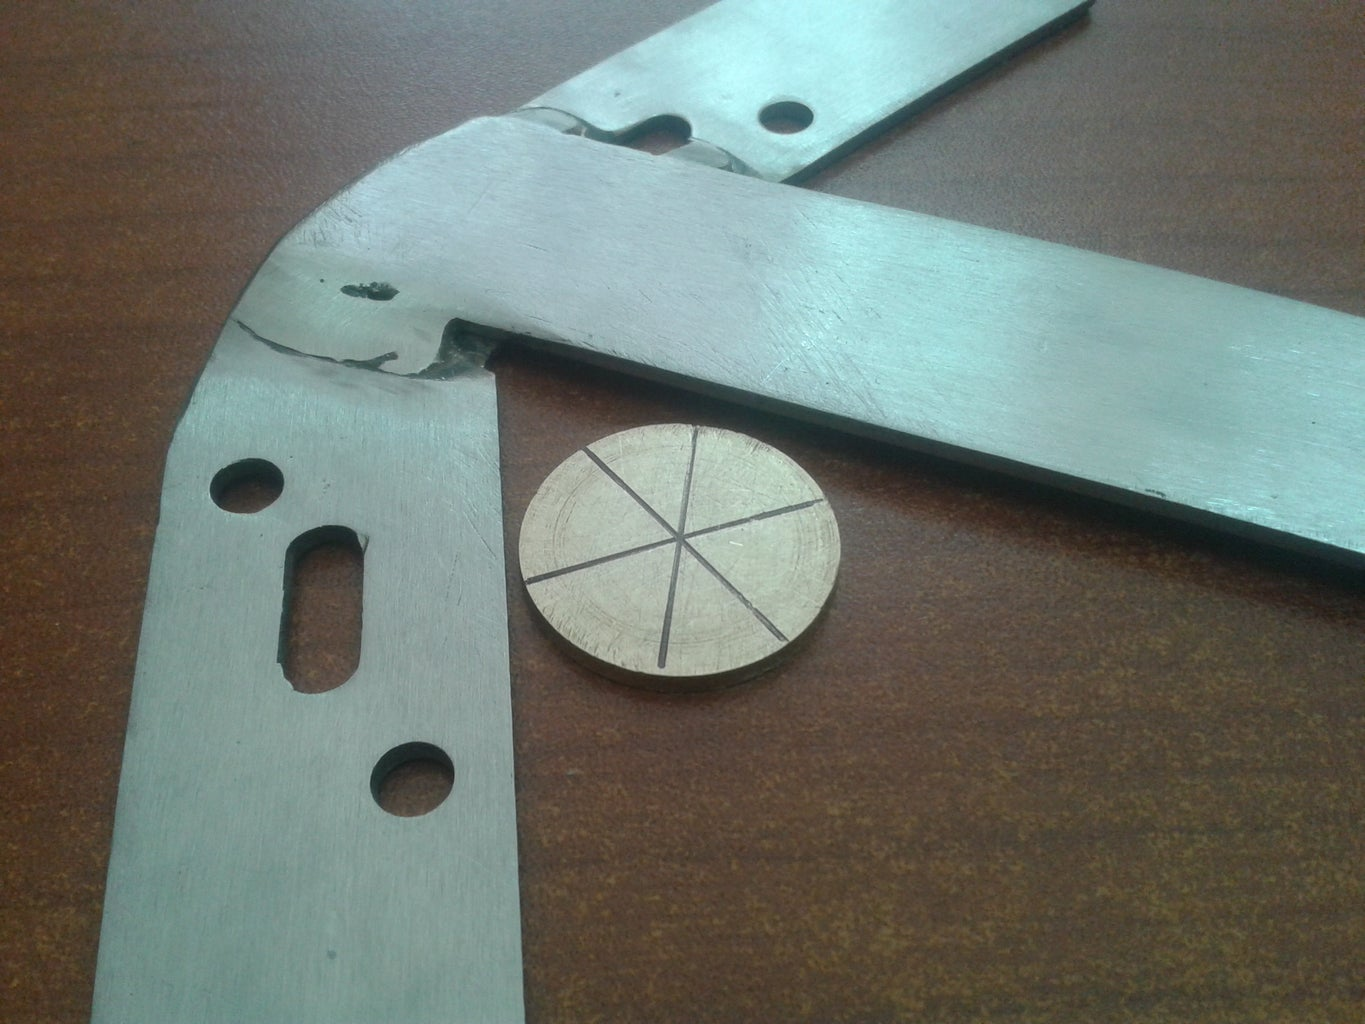 DIY Circle Center Finder Tool, Stainless Steel Made